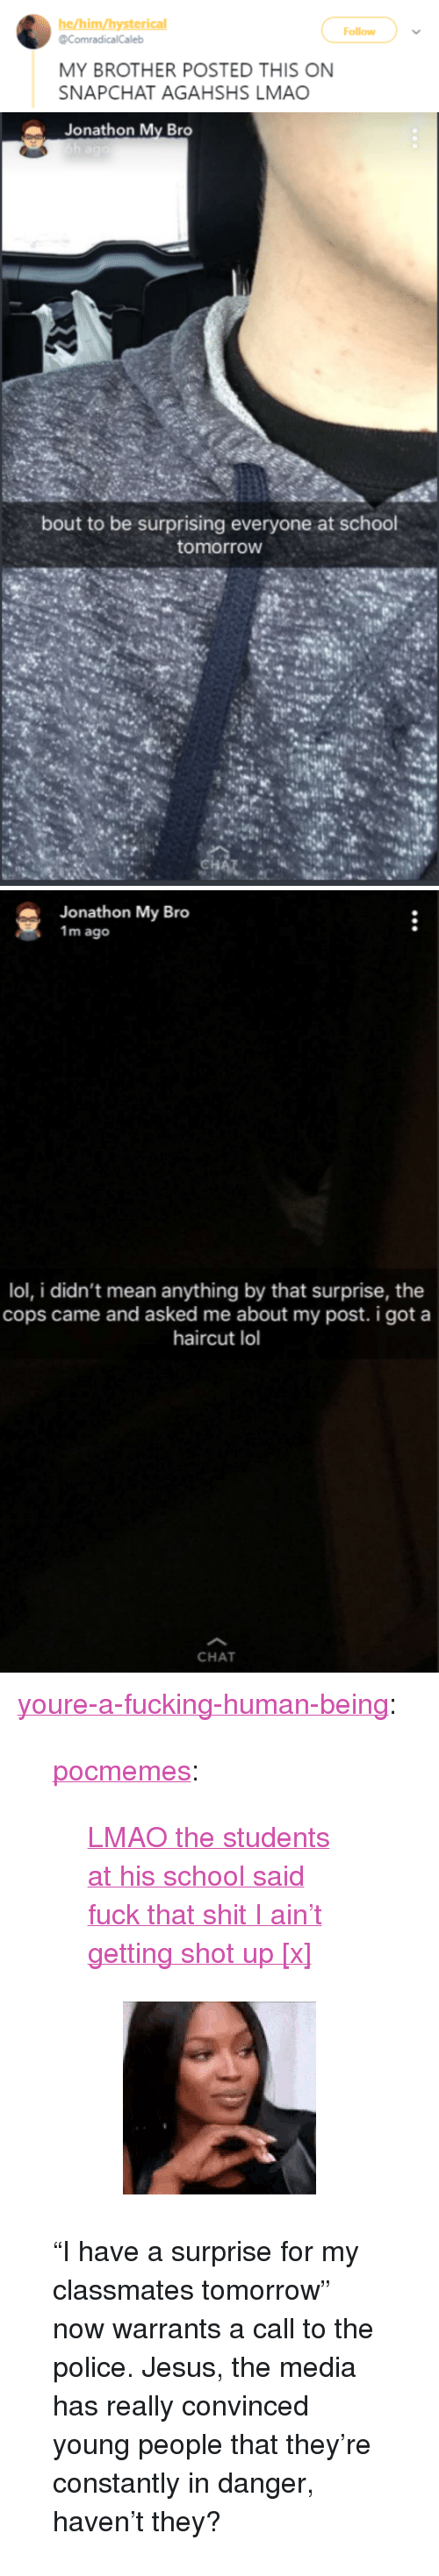 """Fucking, Gif, and Haircut: he/him/hysterical  @ComradicalCaleb  Follow  MY BROTHER POSTED THIS ON  SNAPCHAT AGAHSHS LMAO   Jonathon My Bro  bout to be surprising everyone at school  tomorrow   Jonathon My Bro  1m ago  lol, i didn't mean anything by that surprise, the  cops came and asked me about my post. i got a  haircut lol  CHAT <p><a href=""""http://youre-a-fucking-human-being.tumblr.com/post/172355196711/pocmemes-lmao-the-students-at-his-school-said"""" class=""""tumblr_blog"""">youre-a-fucking-human-being</a>:</p><blockquote> <p><a href=""""https://pocmemes.tumblr.com/post/172347414533/lmao-the-students-at-his-school-said-fuck-that"""" class=""""tumblr_blog"""">pocmemes</a>:</p> <blockquote> <p><a href=""""https://twitter.com/ComradicalCaleb/status/978482124675276802"""">  LMAO the students at his school said fuck that shit I ain't getting shot up[x]</a></p> <figure data-orig-width=""""220"""" data-orig-height=""""220""""><img src=""""https://78.media.tumblr.com/c0c6e386523db553c65e28b8703f10b6/tumblr_inline_p6b7tudyHp1ty99rh_540.gif"""" alt=""""image"""" data-orig-width=""""220"""" data-orig-height=""""220""""/></figure></blockquote>  <p>""""I have a surprise for my classmates tomorrow"""" now warrants a call to the police. Jesus, the media has really convinced young people that they're constantly in danger, haven't they? </p> </blockquote>"""